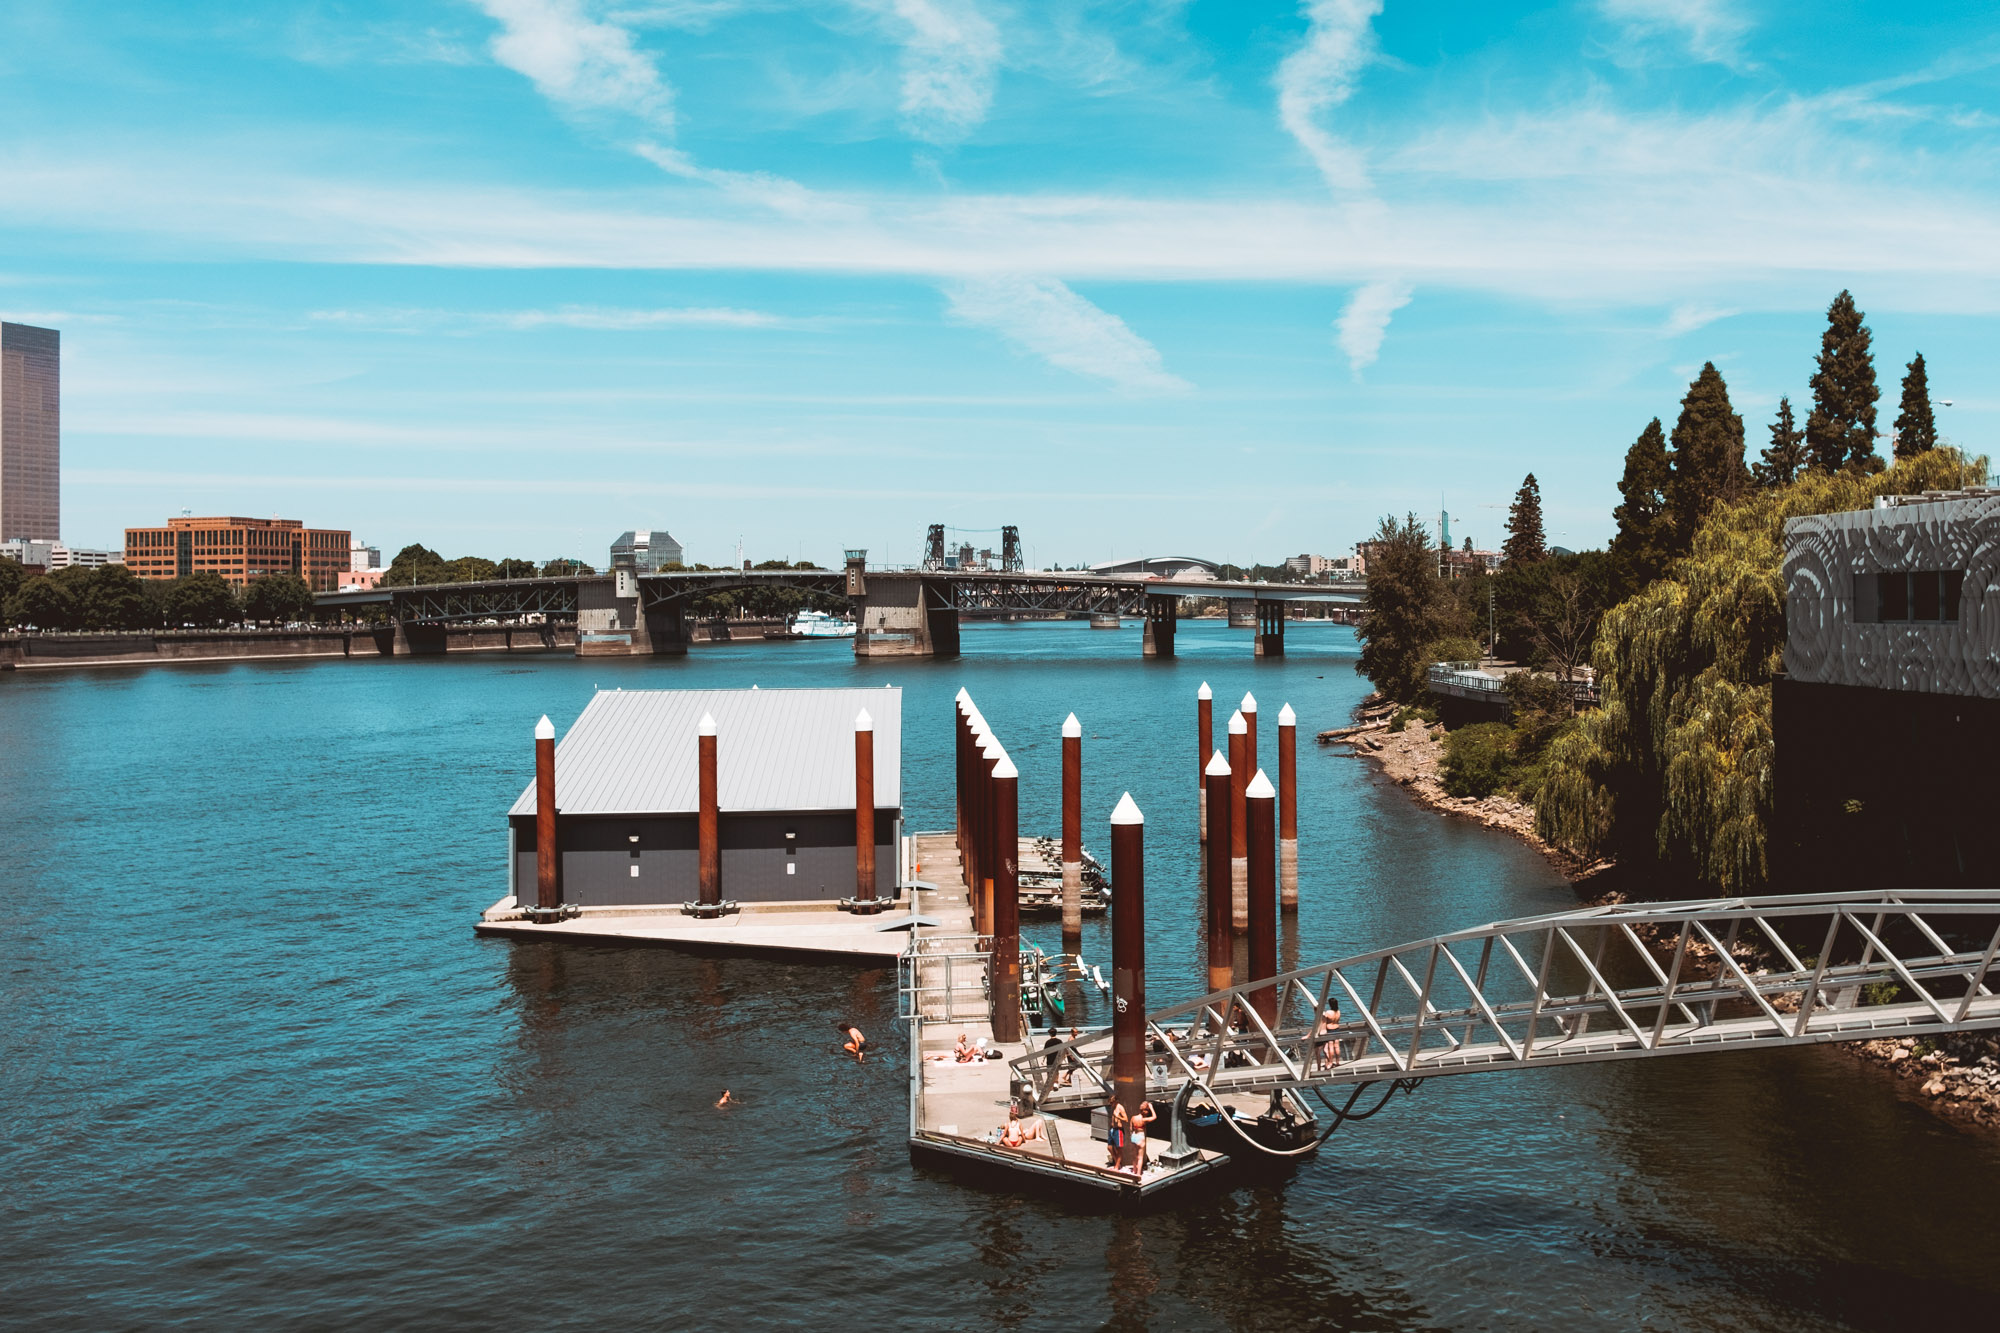 People-swimming-willamette-river-Portland-Oregon